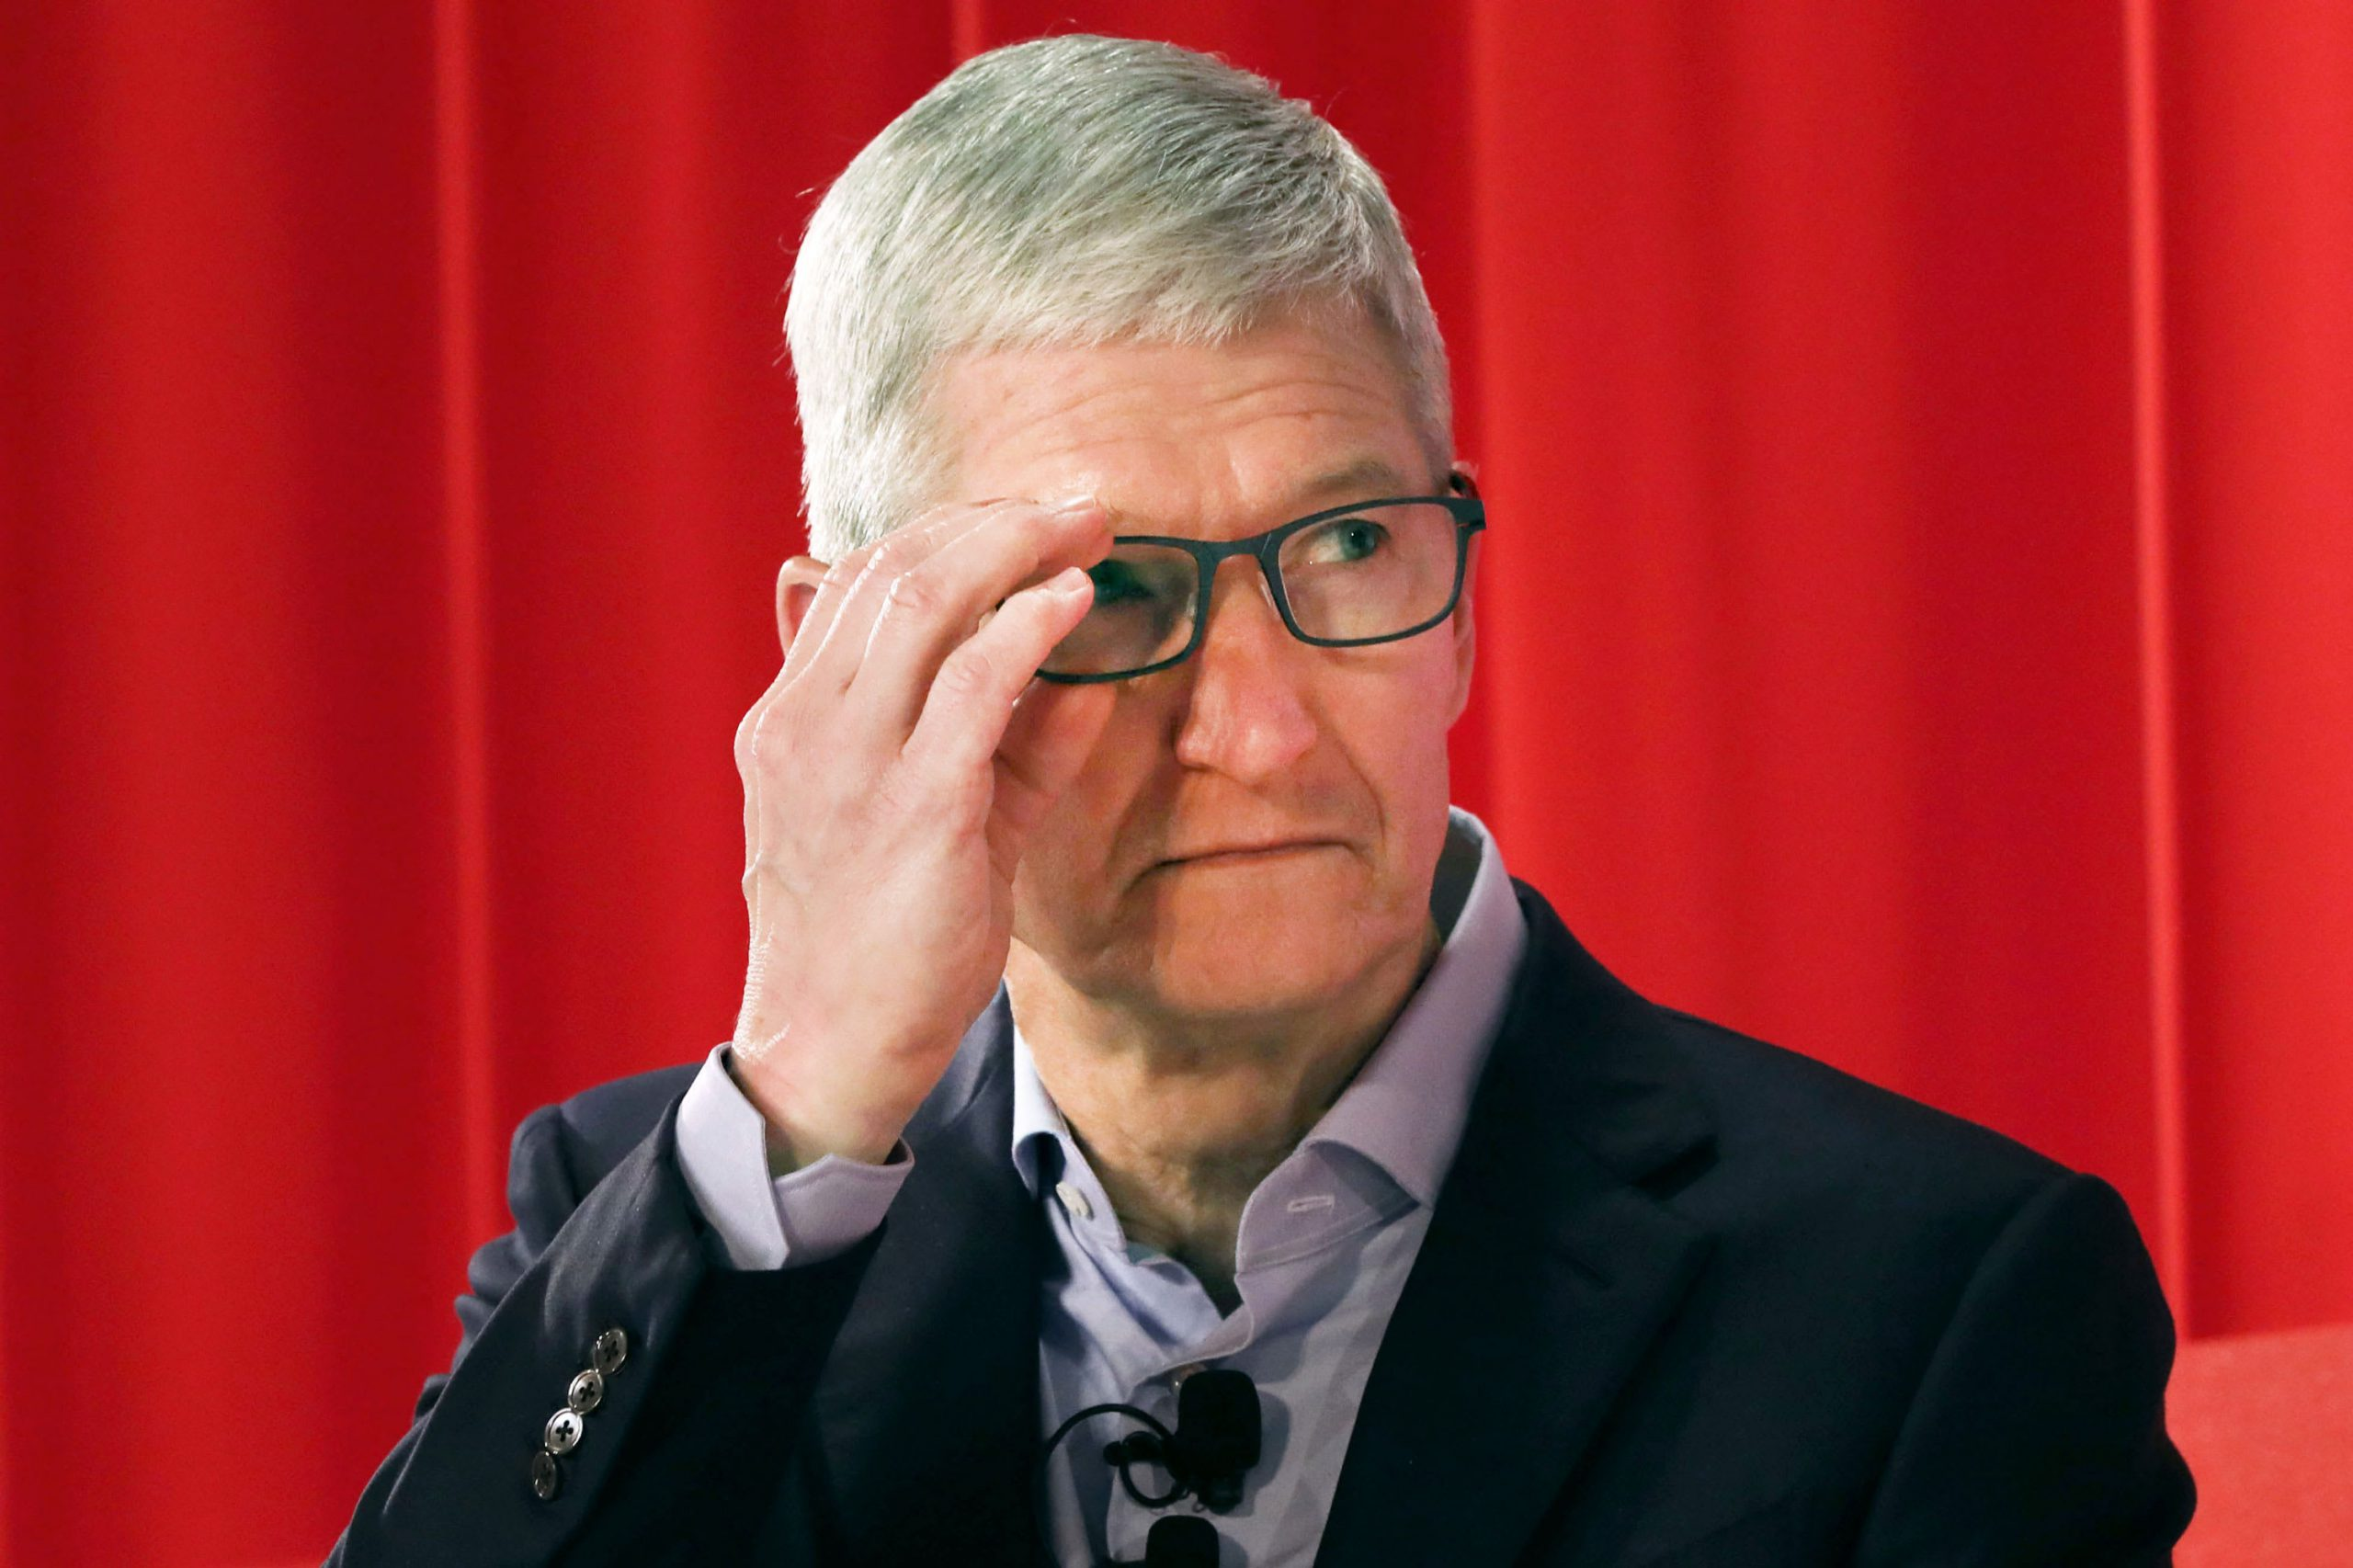 Tim Cook says Apple has shut one store in China and is restricting employee travel because of coronavirus